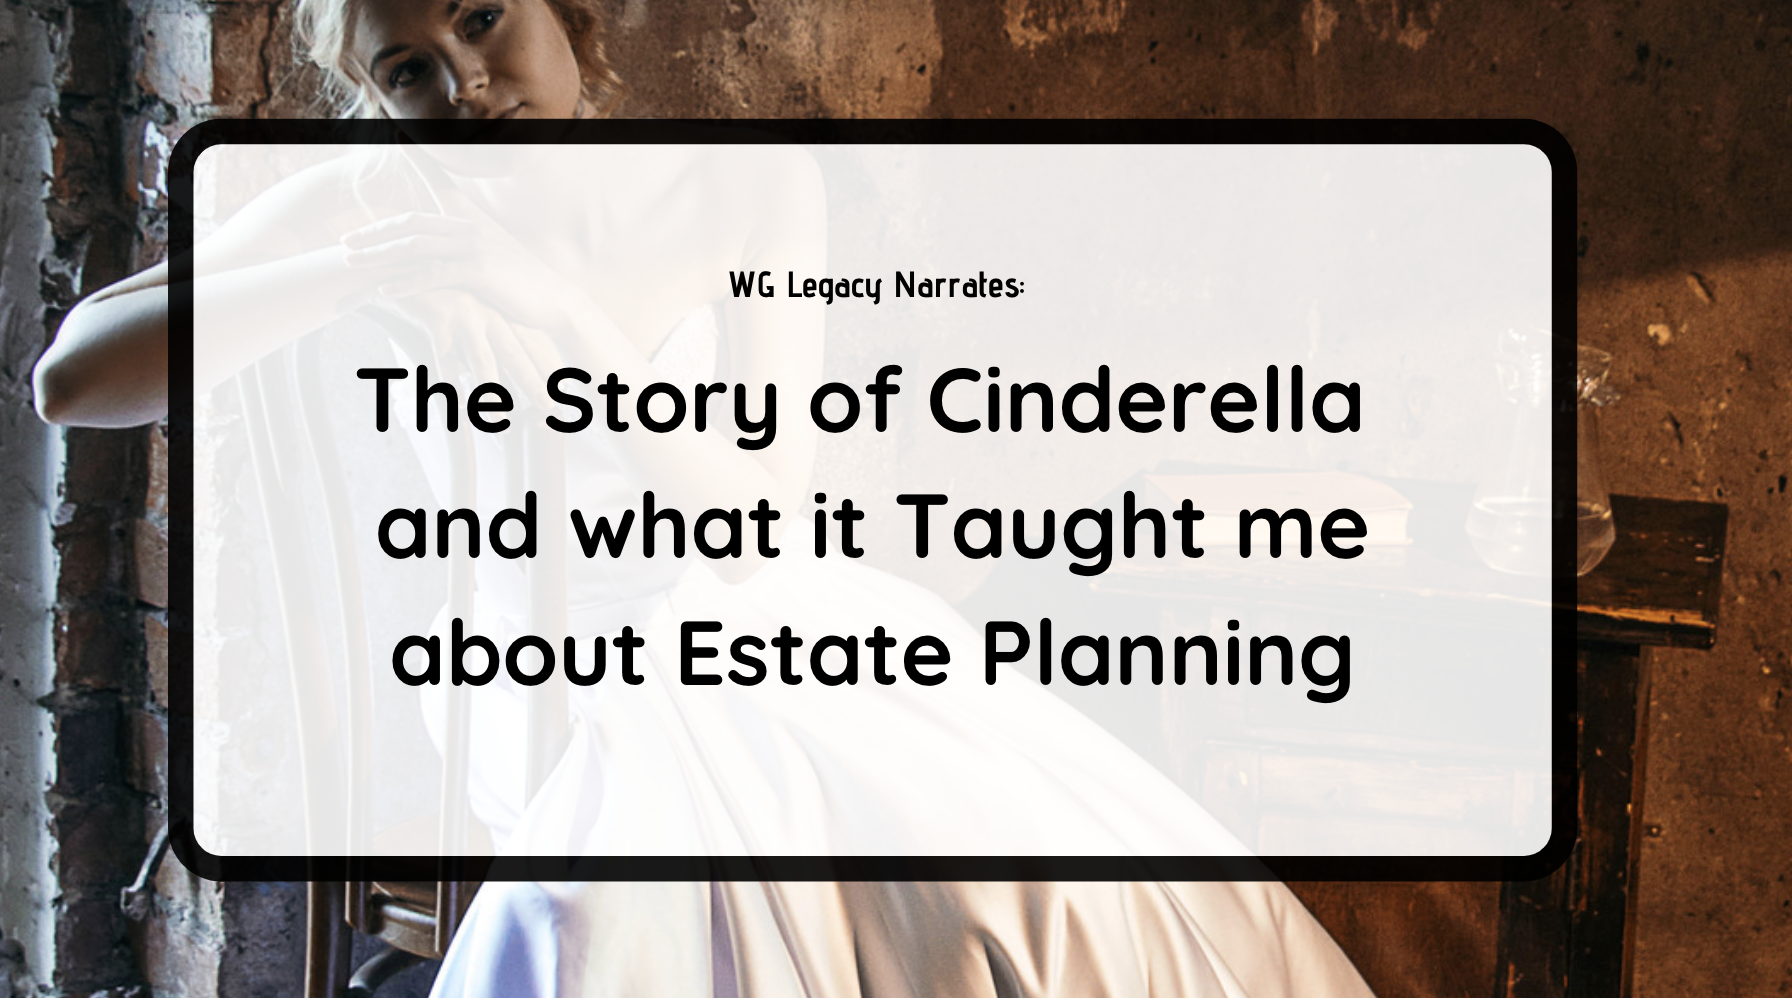 The Story of Cinderella and What it Taught Me about Estate Planning